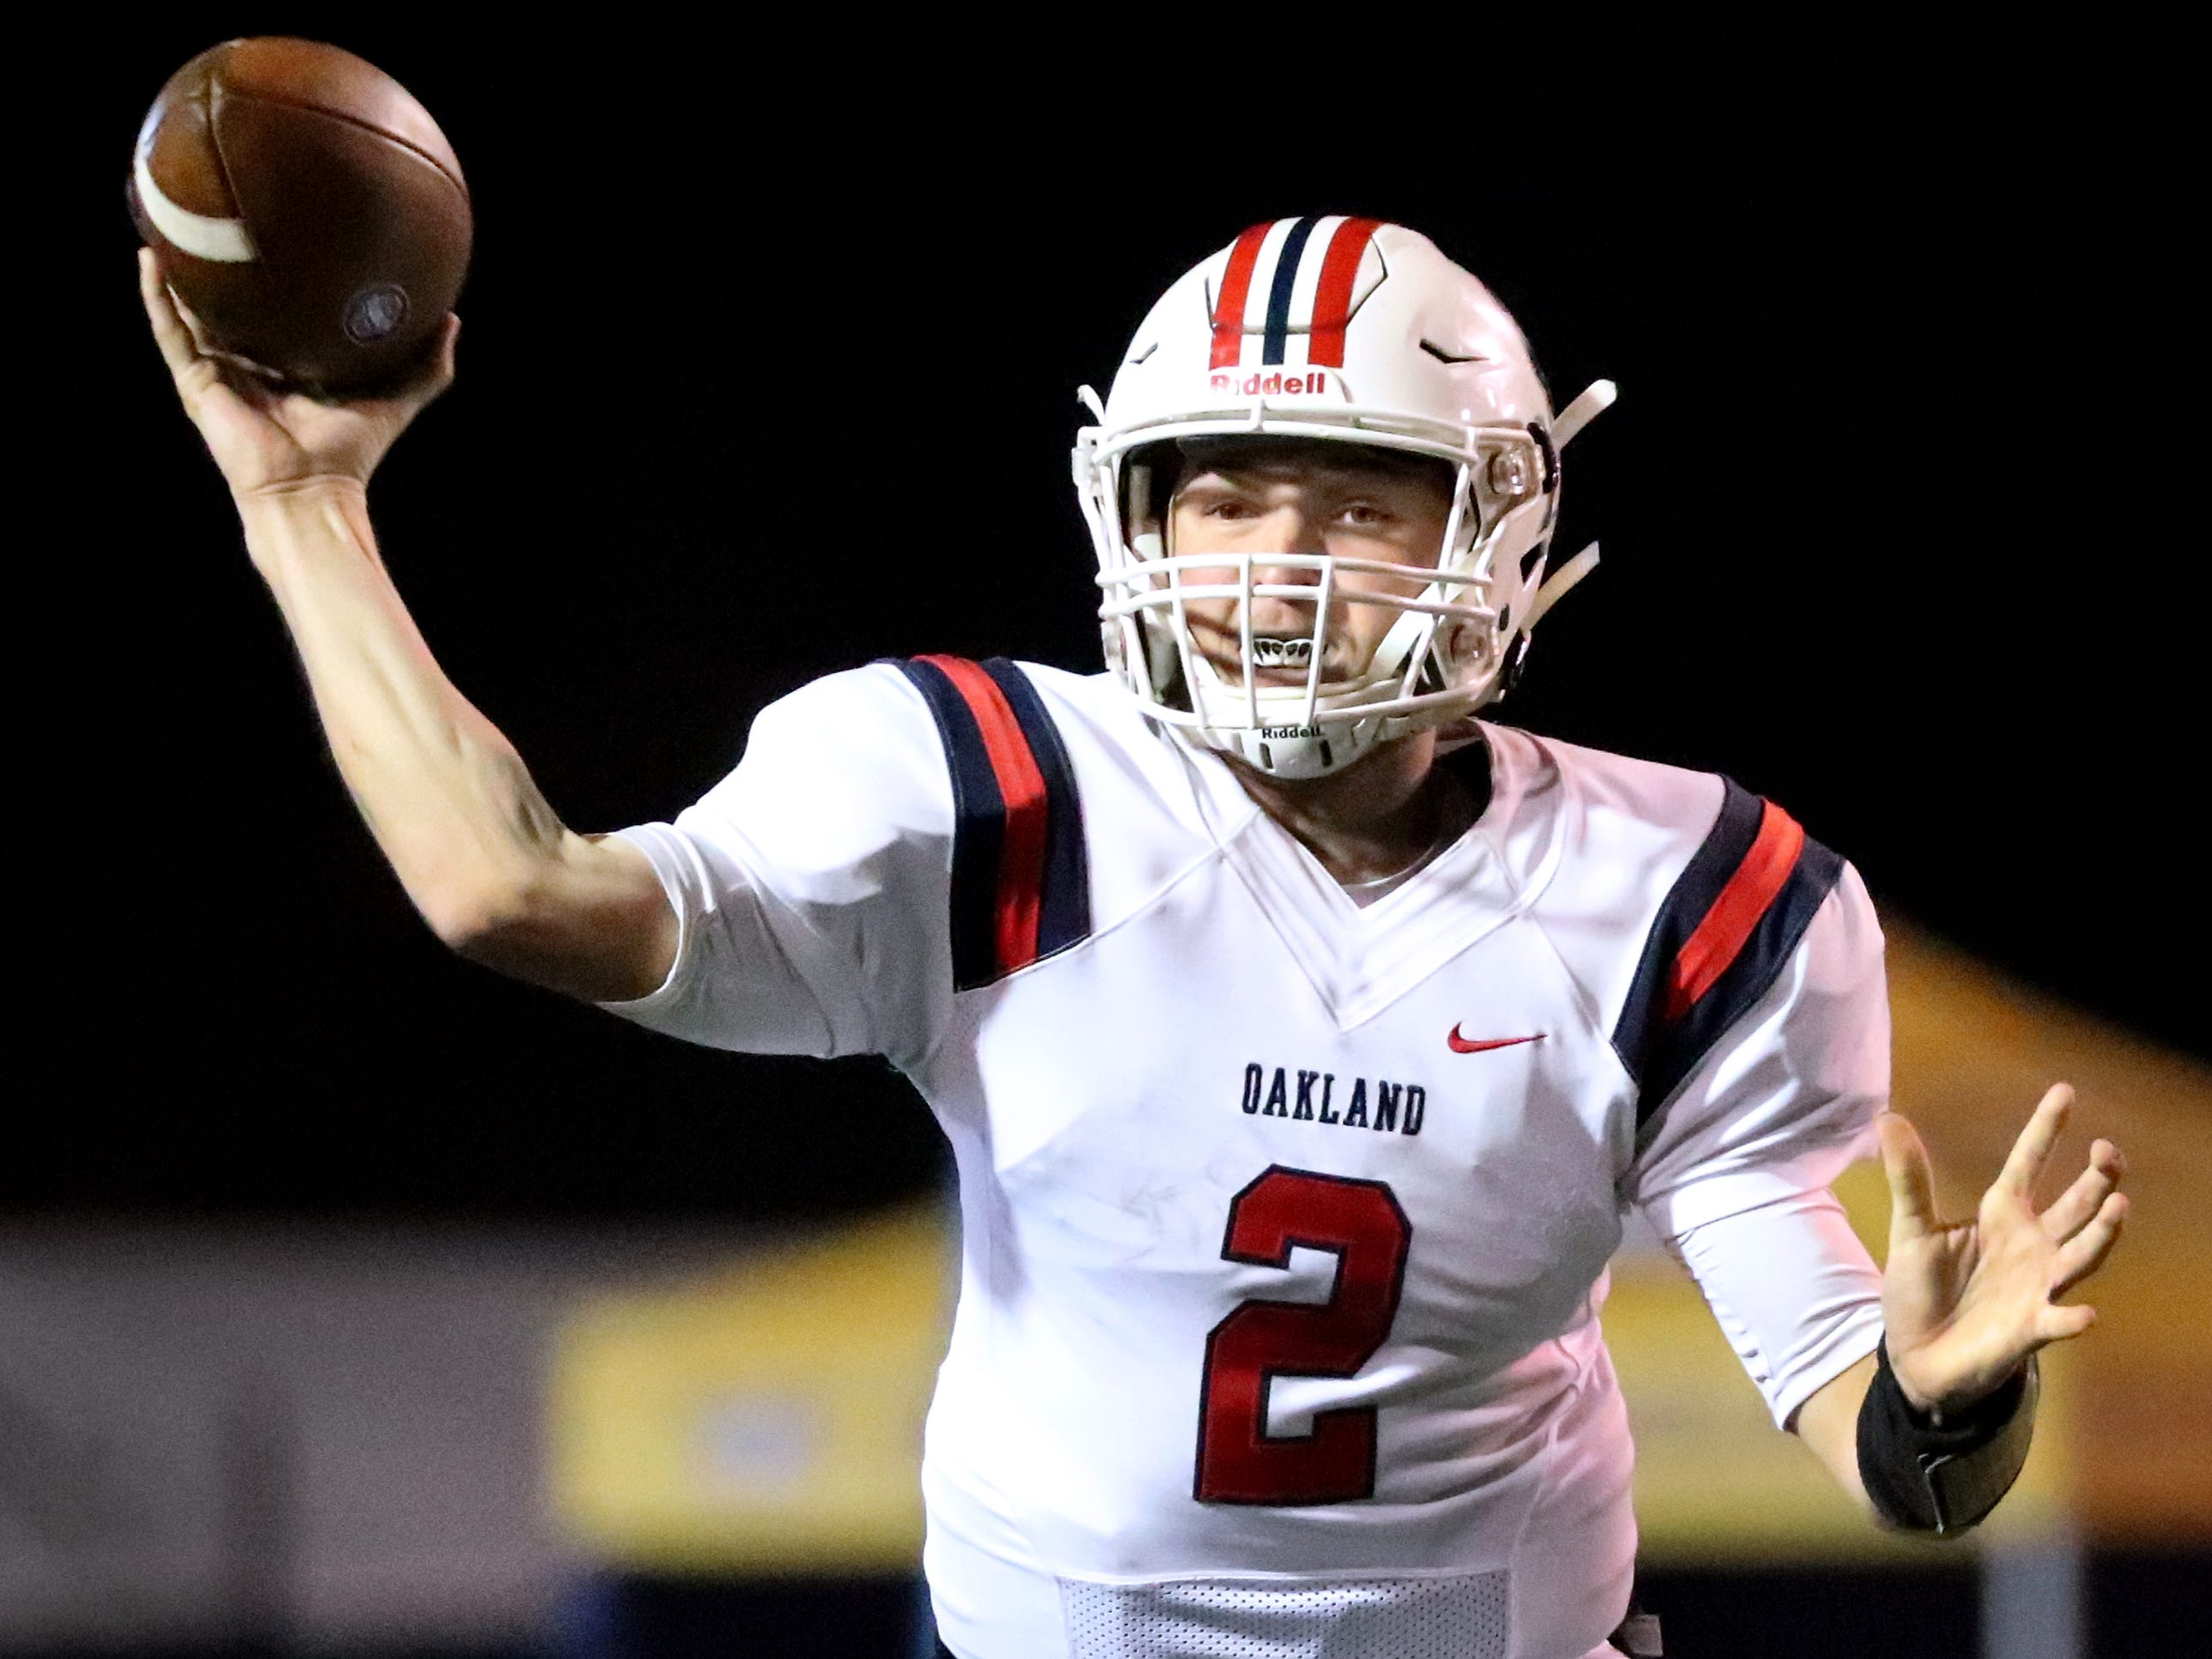 Oakland's quarterback Brevin Linnell (2) passes the ball against Whitehaven during the 6A State Championship BlueCross Bowl game on Thursday, Nov. 29 2018.